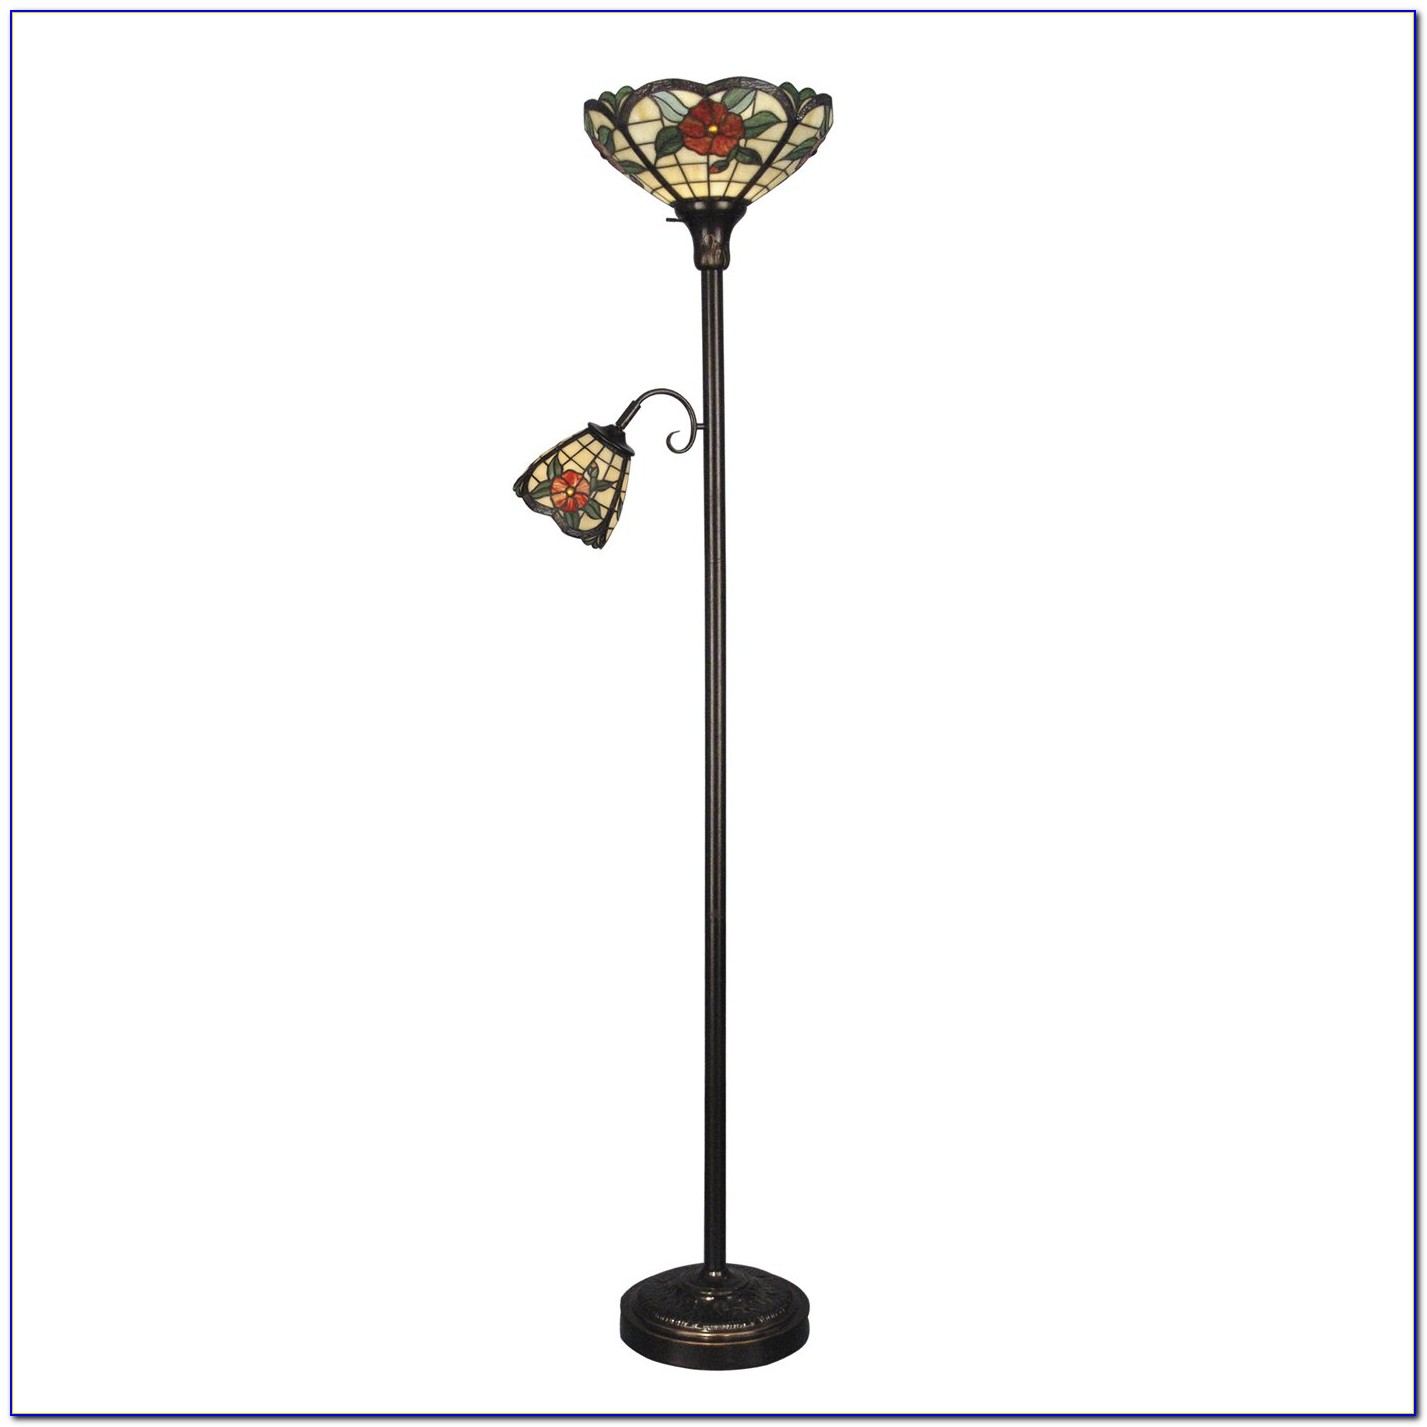 Dale Tiffany Floor Lamp With Side Light